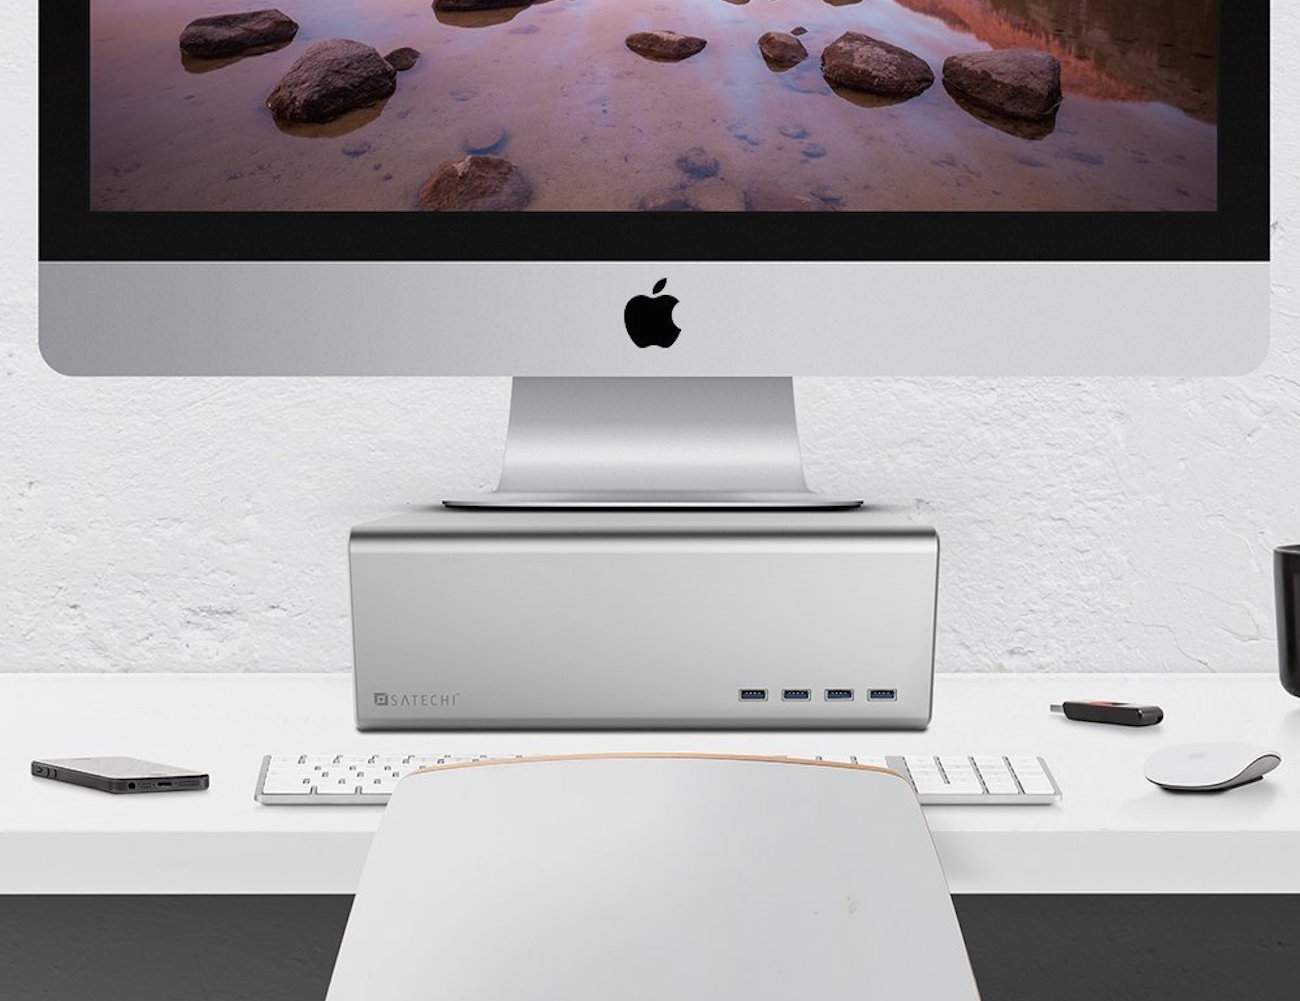 Premium Aluminum Monitor Stand and Four Port USB 3.0 Hub by Satechi